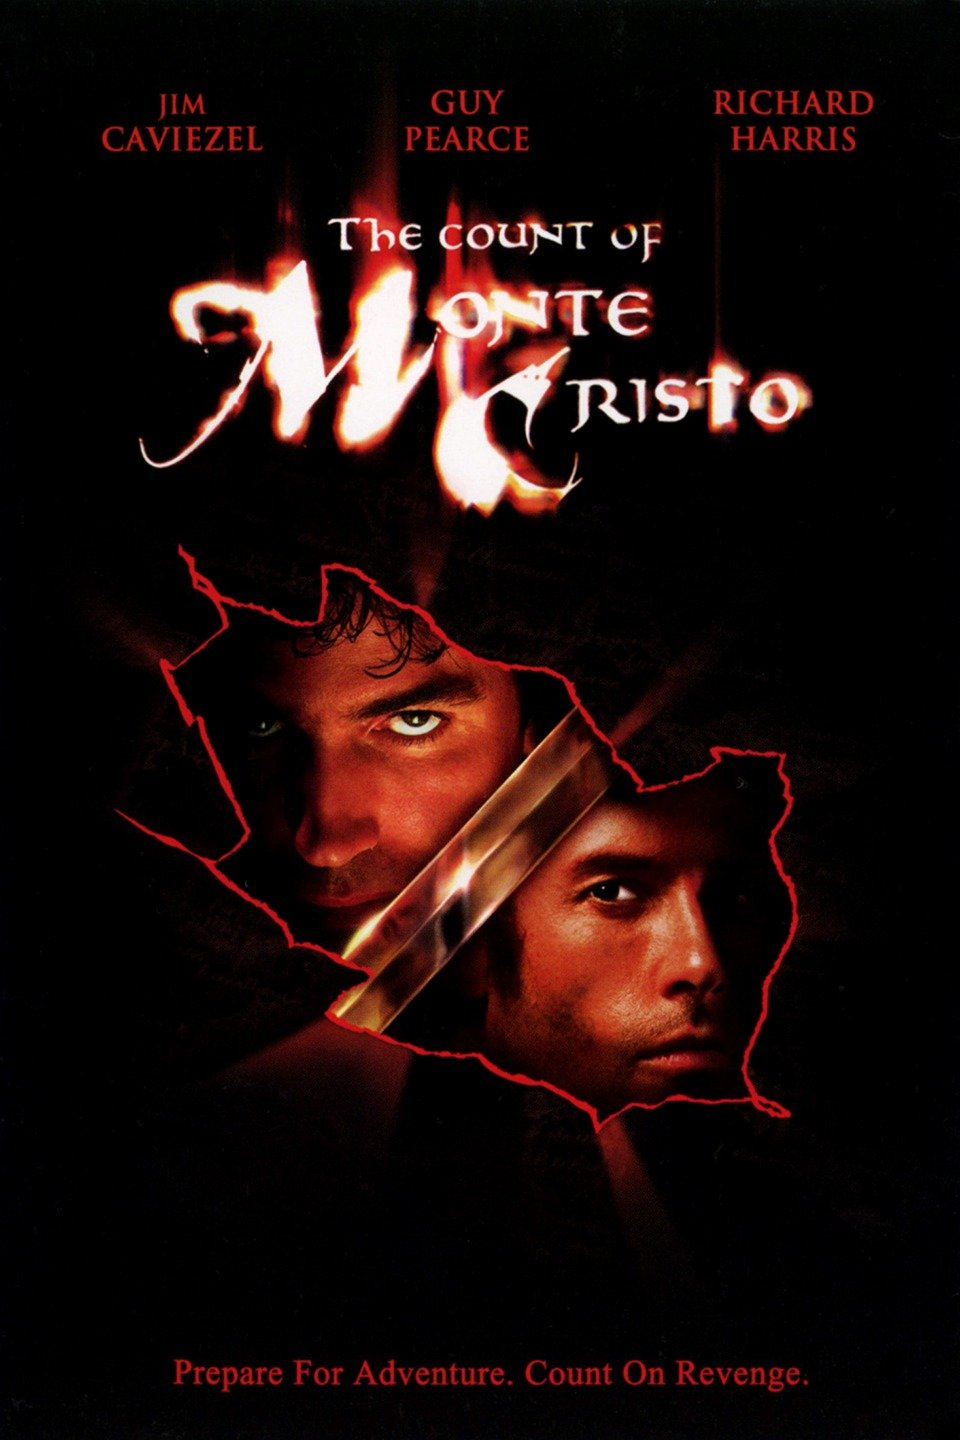 File:The Count of Monte Cristo.jpg